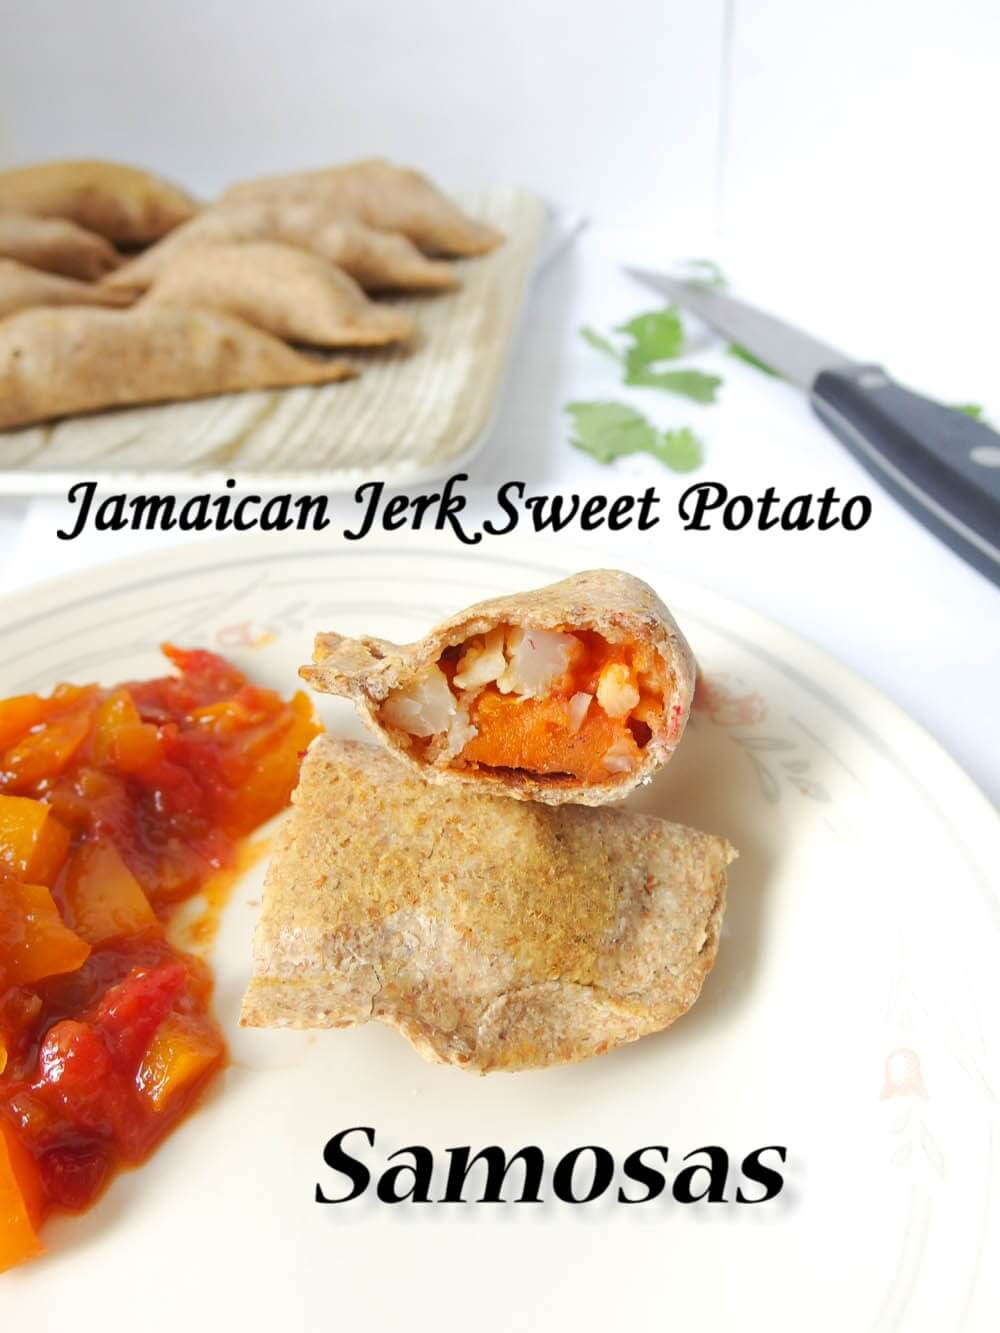 Baked Jamaican Jerk Sweet Potato Samosas with Grapefruit Chutney